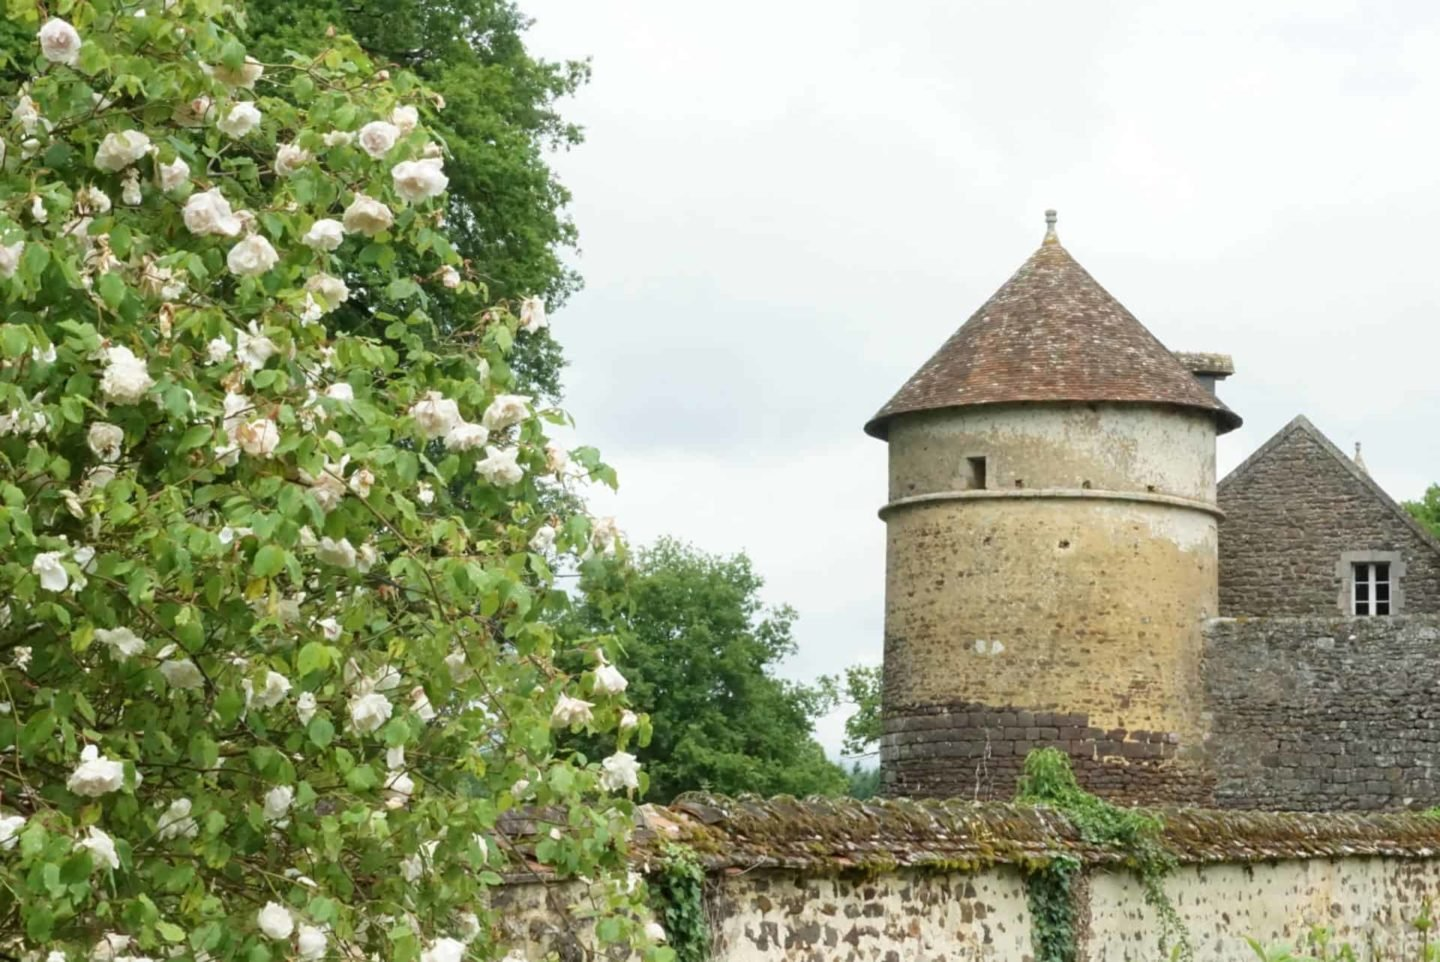 My Sunday Photo, The Beauty of Chateau Ratilly